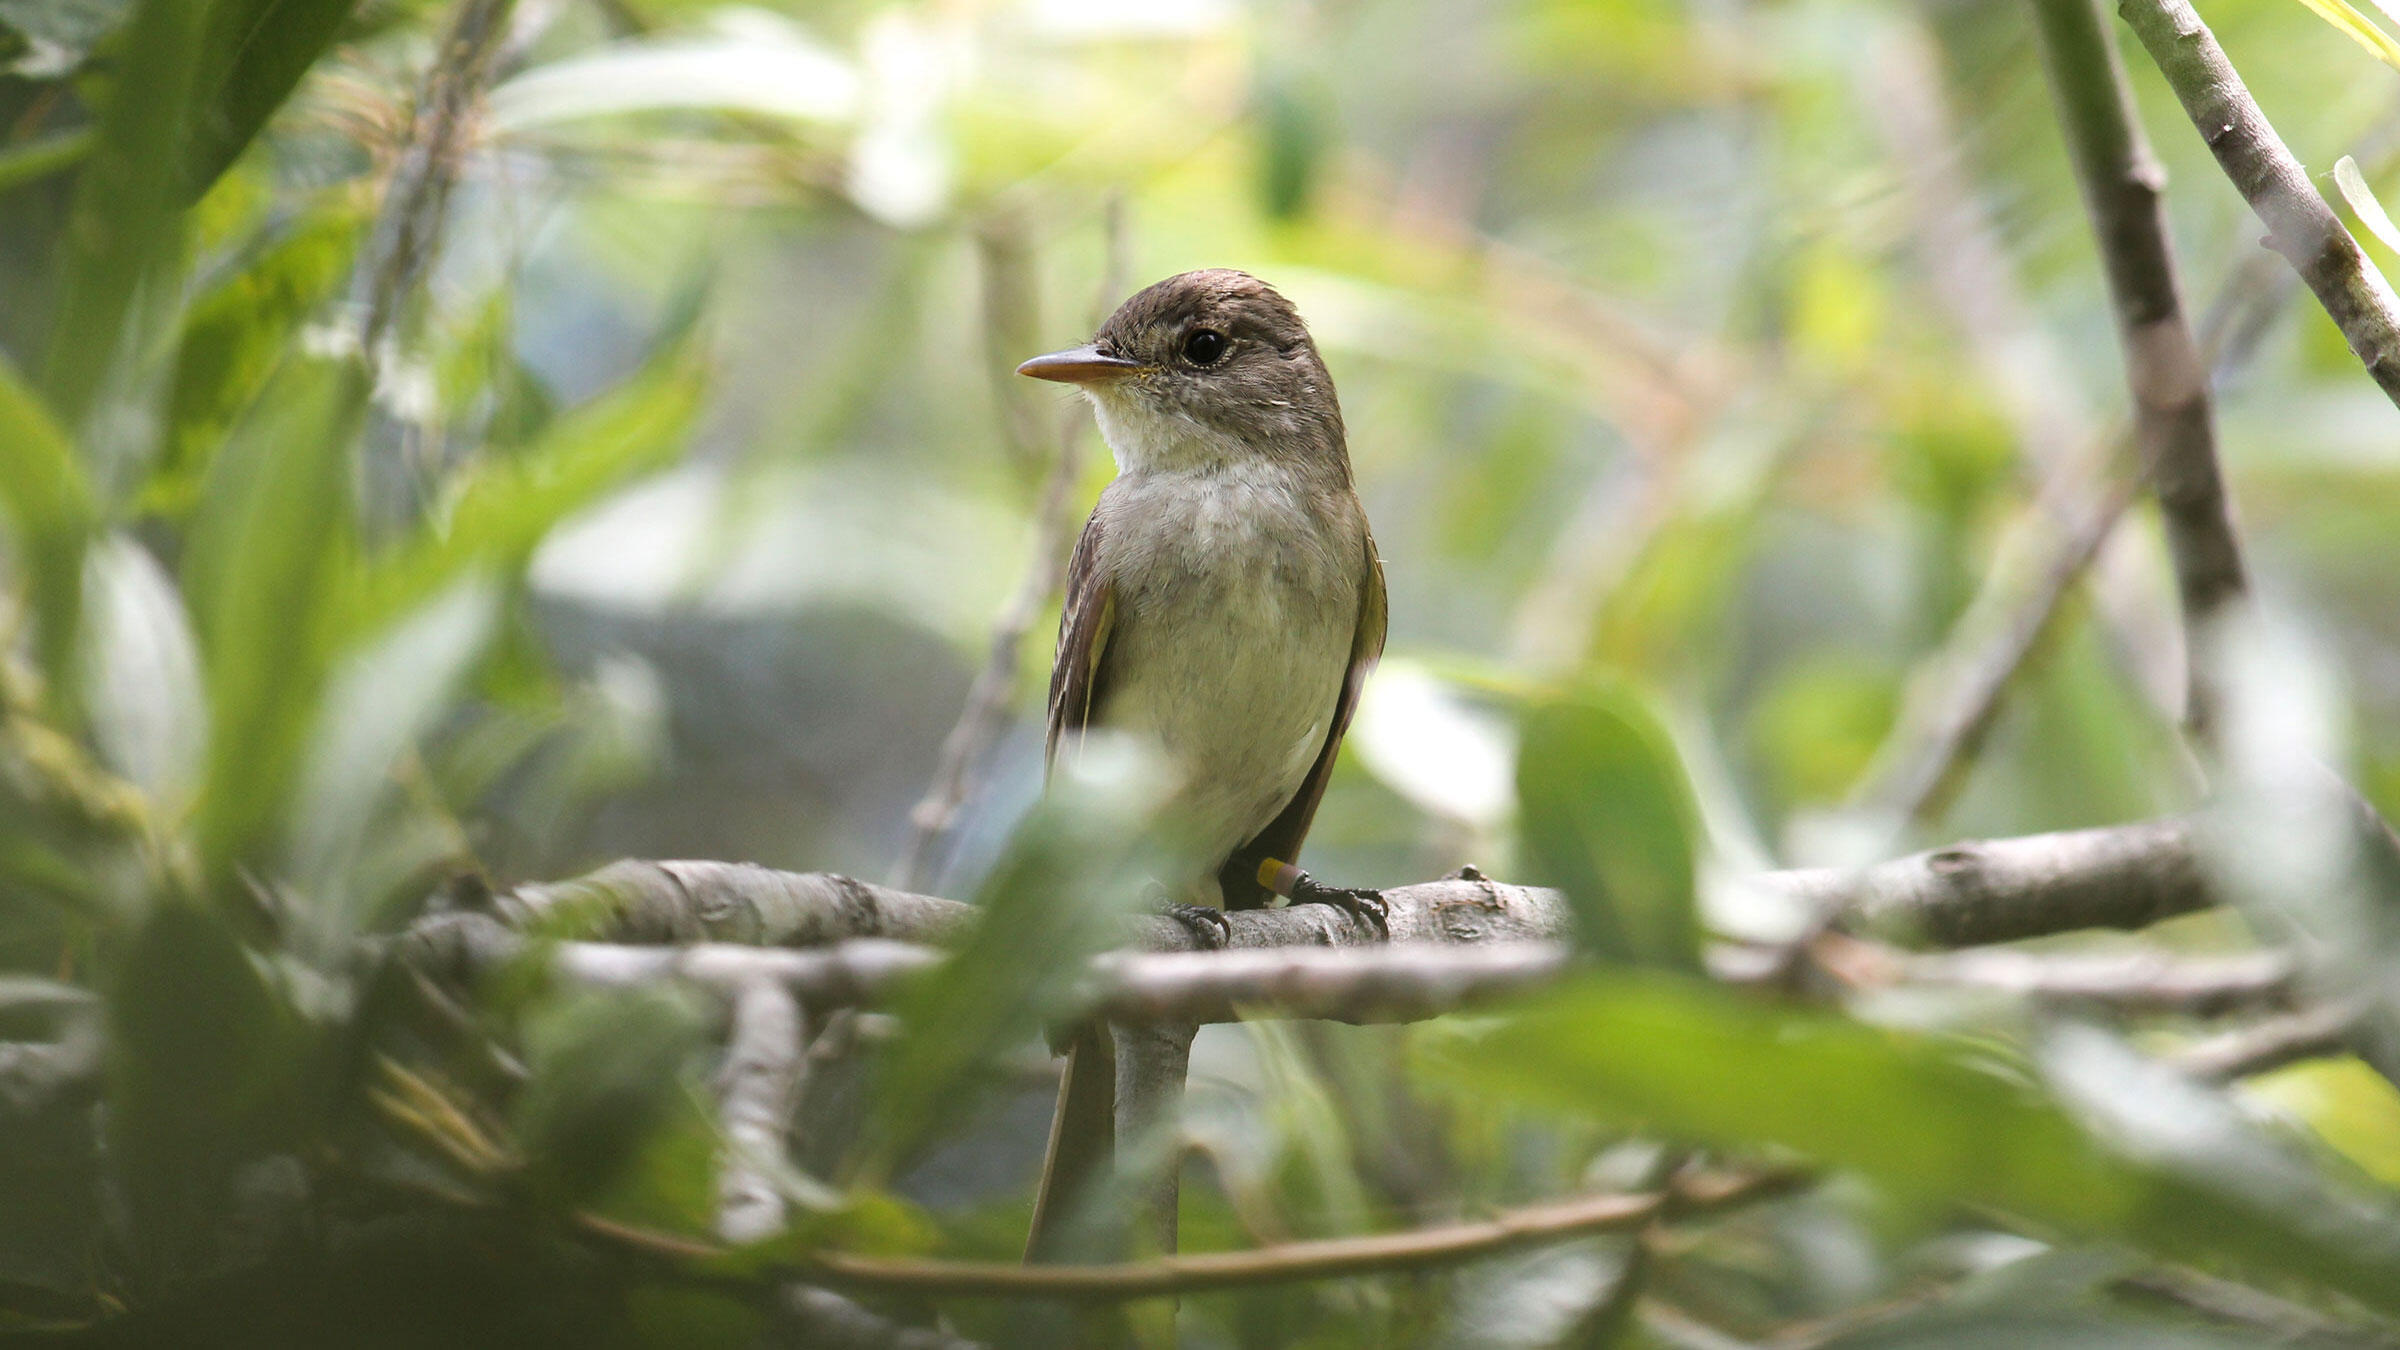 The endangered Southwestern Willow Flycatcher relies on the Rio Grande's thirsty cottonwood forests. Scarlett Howell/USGS